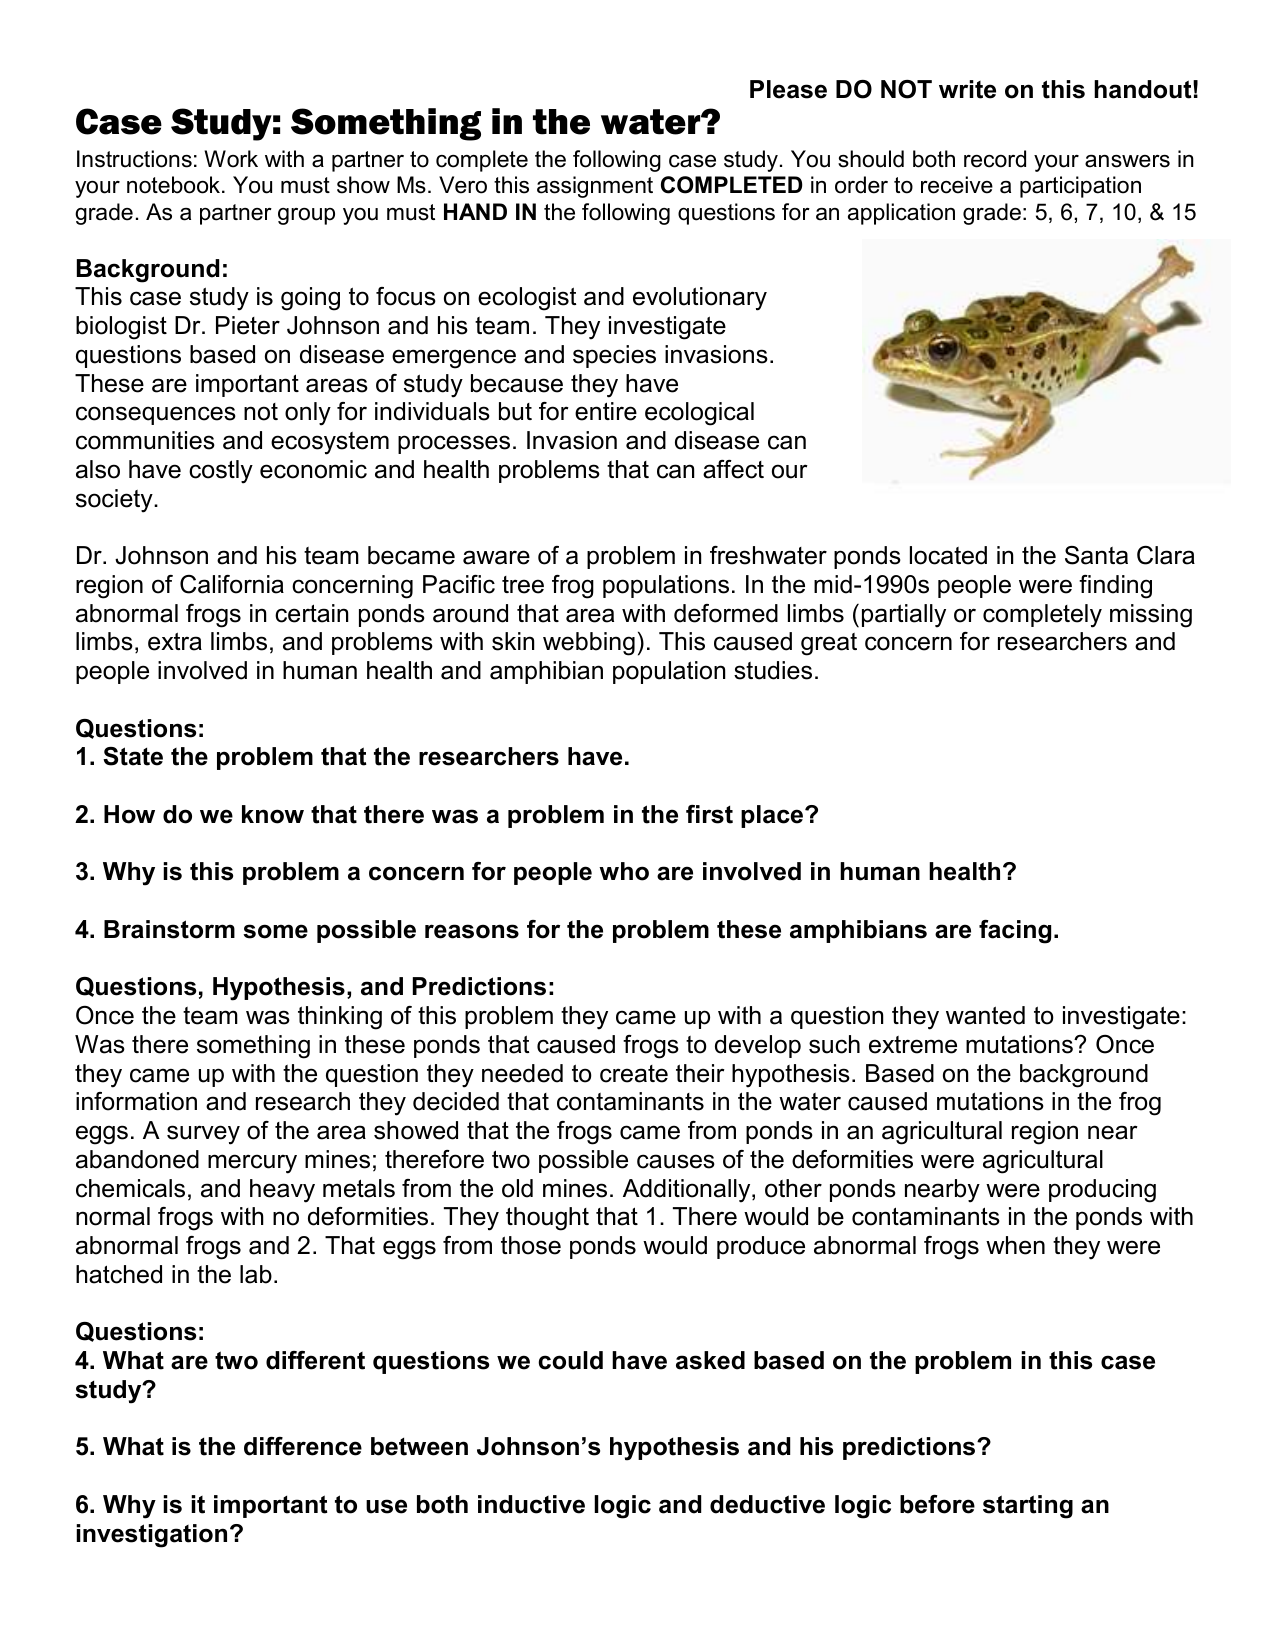 Case Study Abnormal Frogs